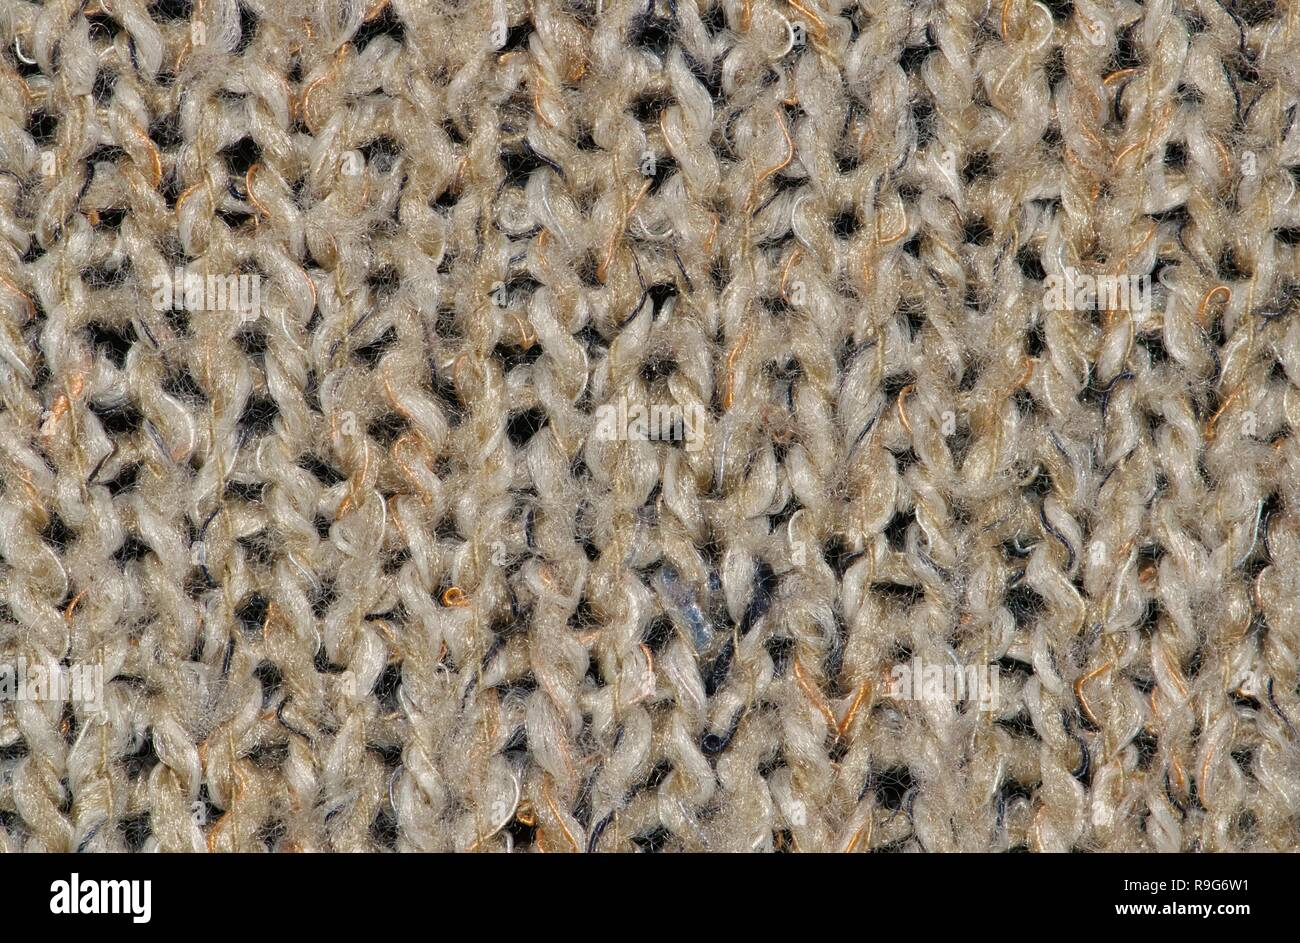 7a2b61ae4c7b Close-up swatch of coarse woolen knit texture from a tan-colored cardigan.